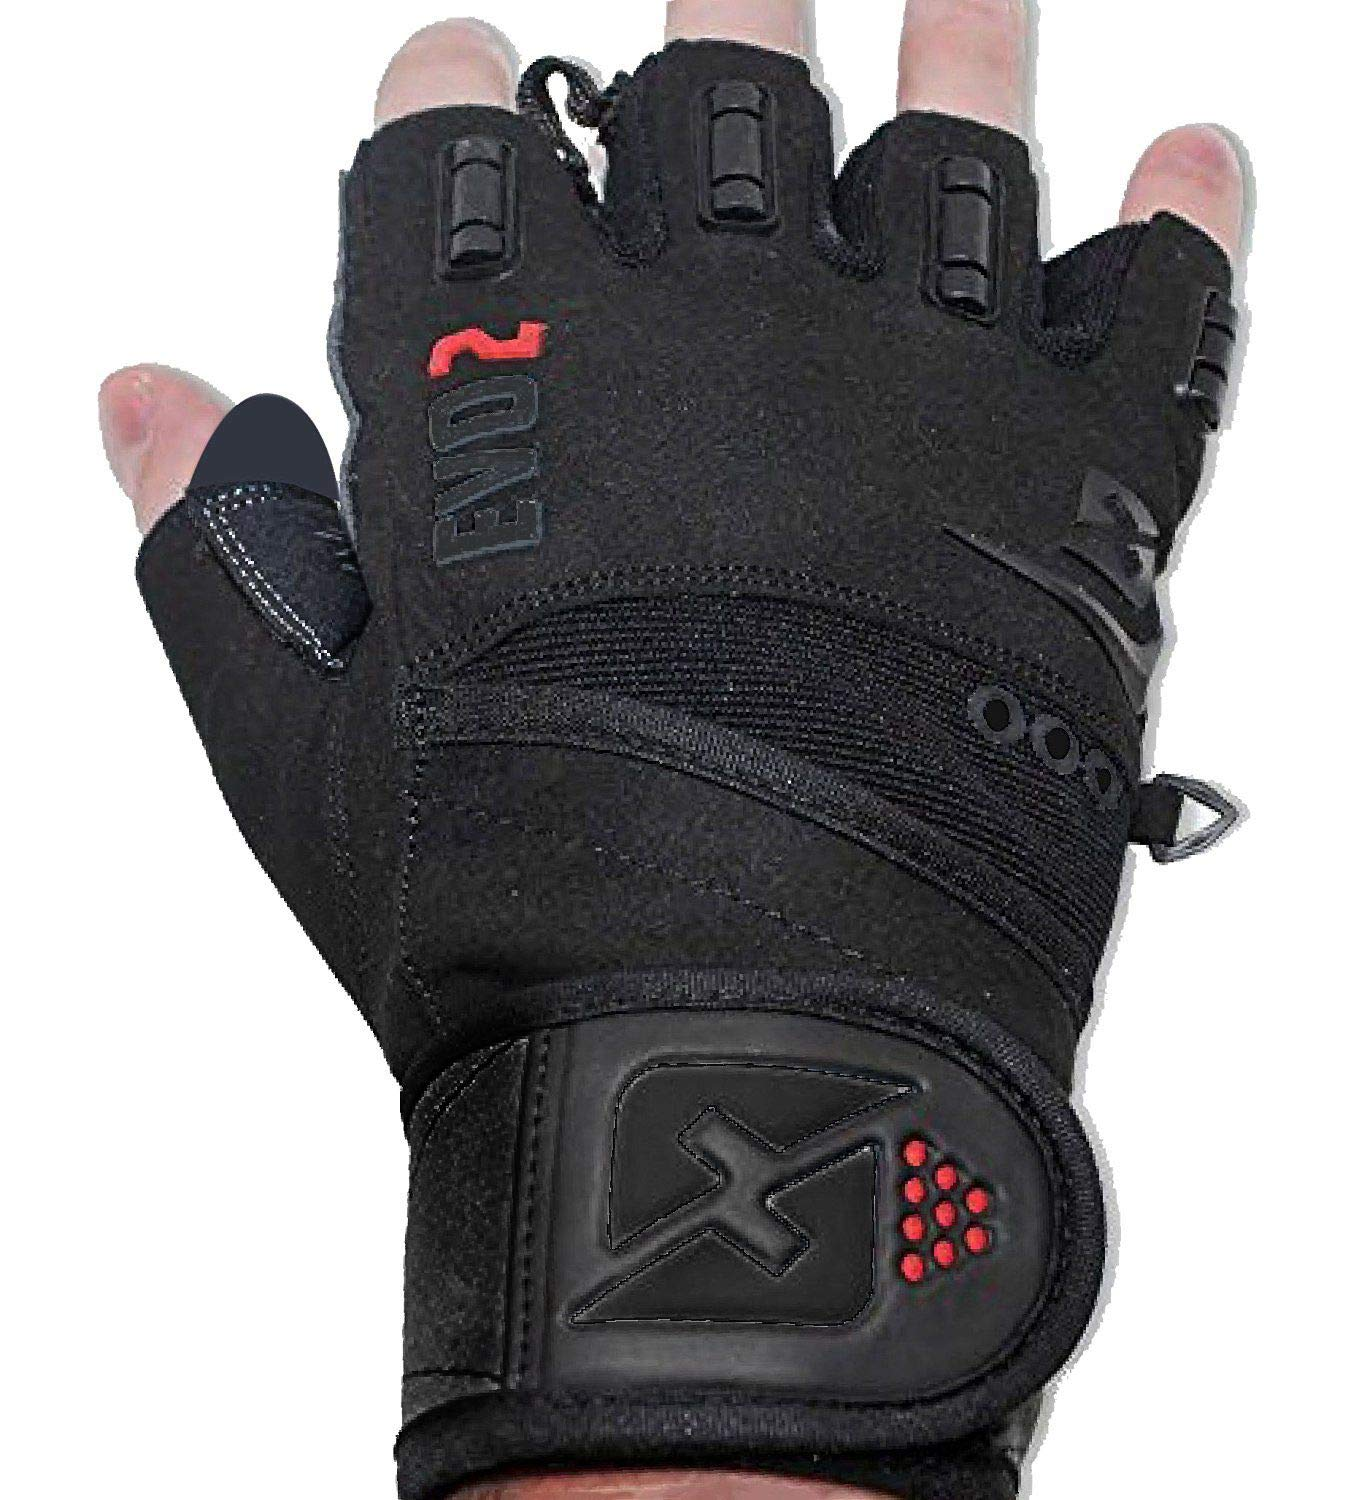 skott 2019 Evo 2 Weightlifting Gloves with Integrated Wrist Wrap Support-Double Stitching for Extra Durability-Get Ripped with The Best Body Building Fitness and Exercise Accessories